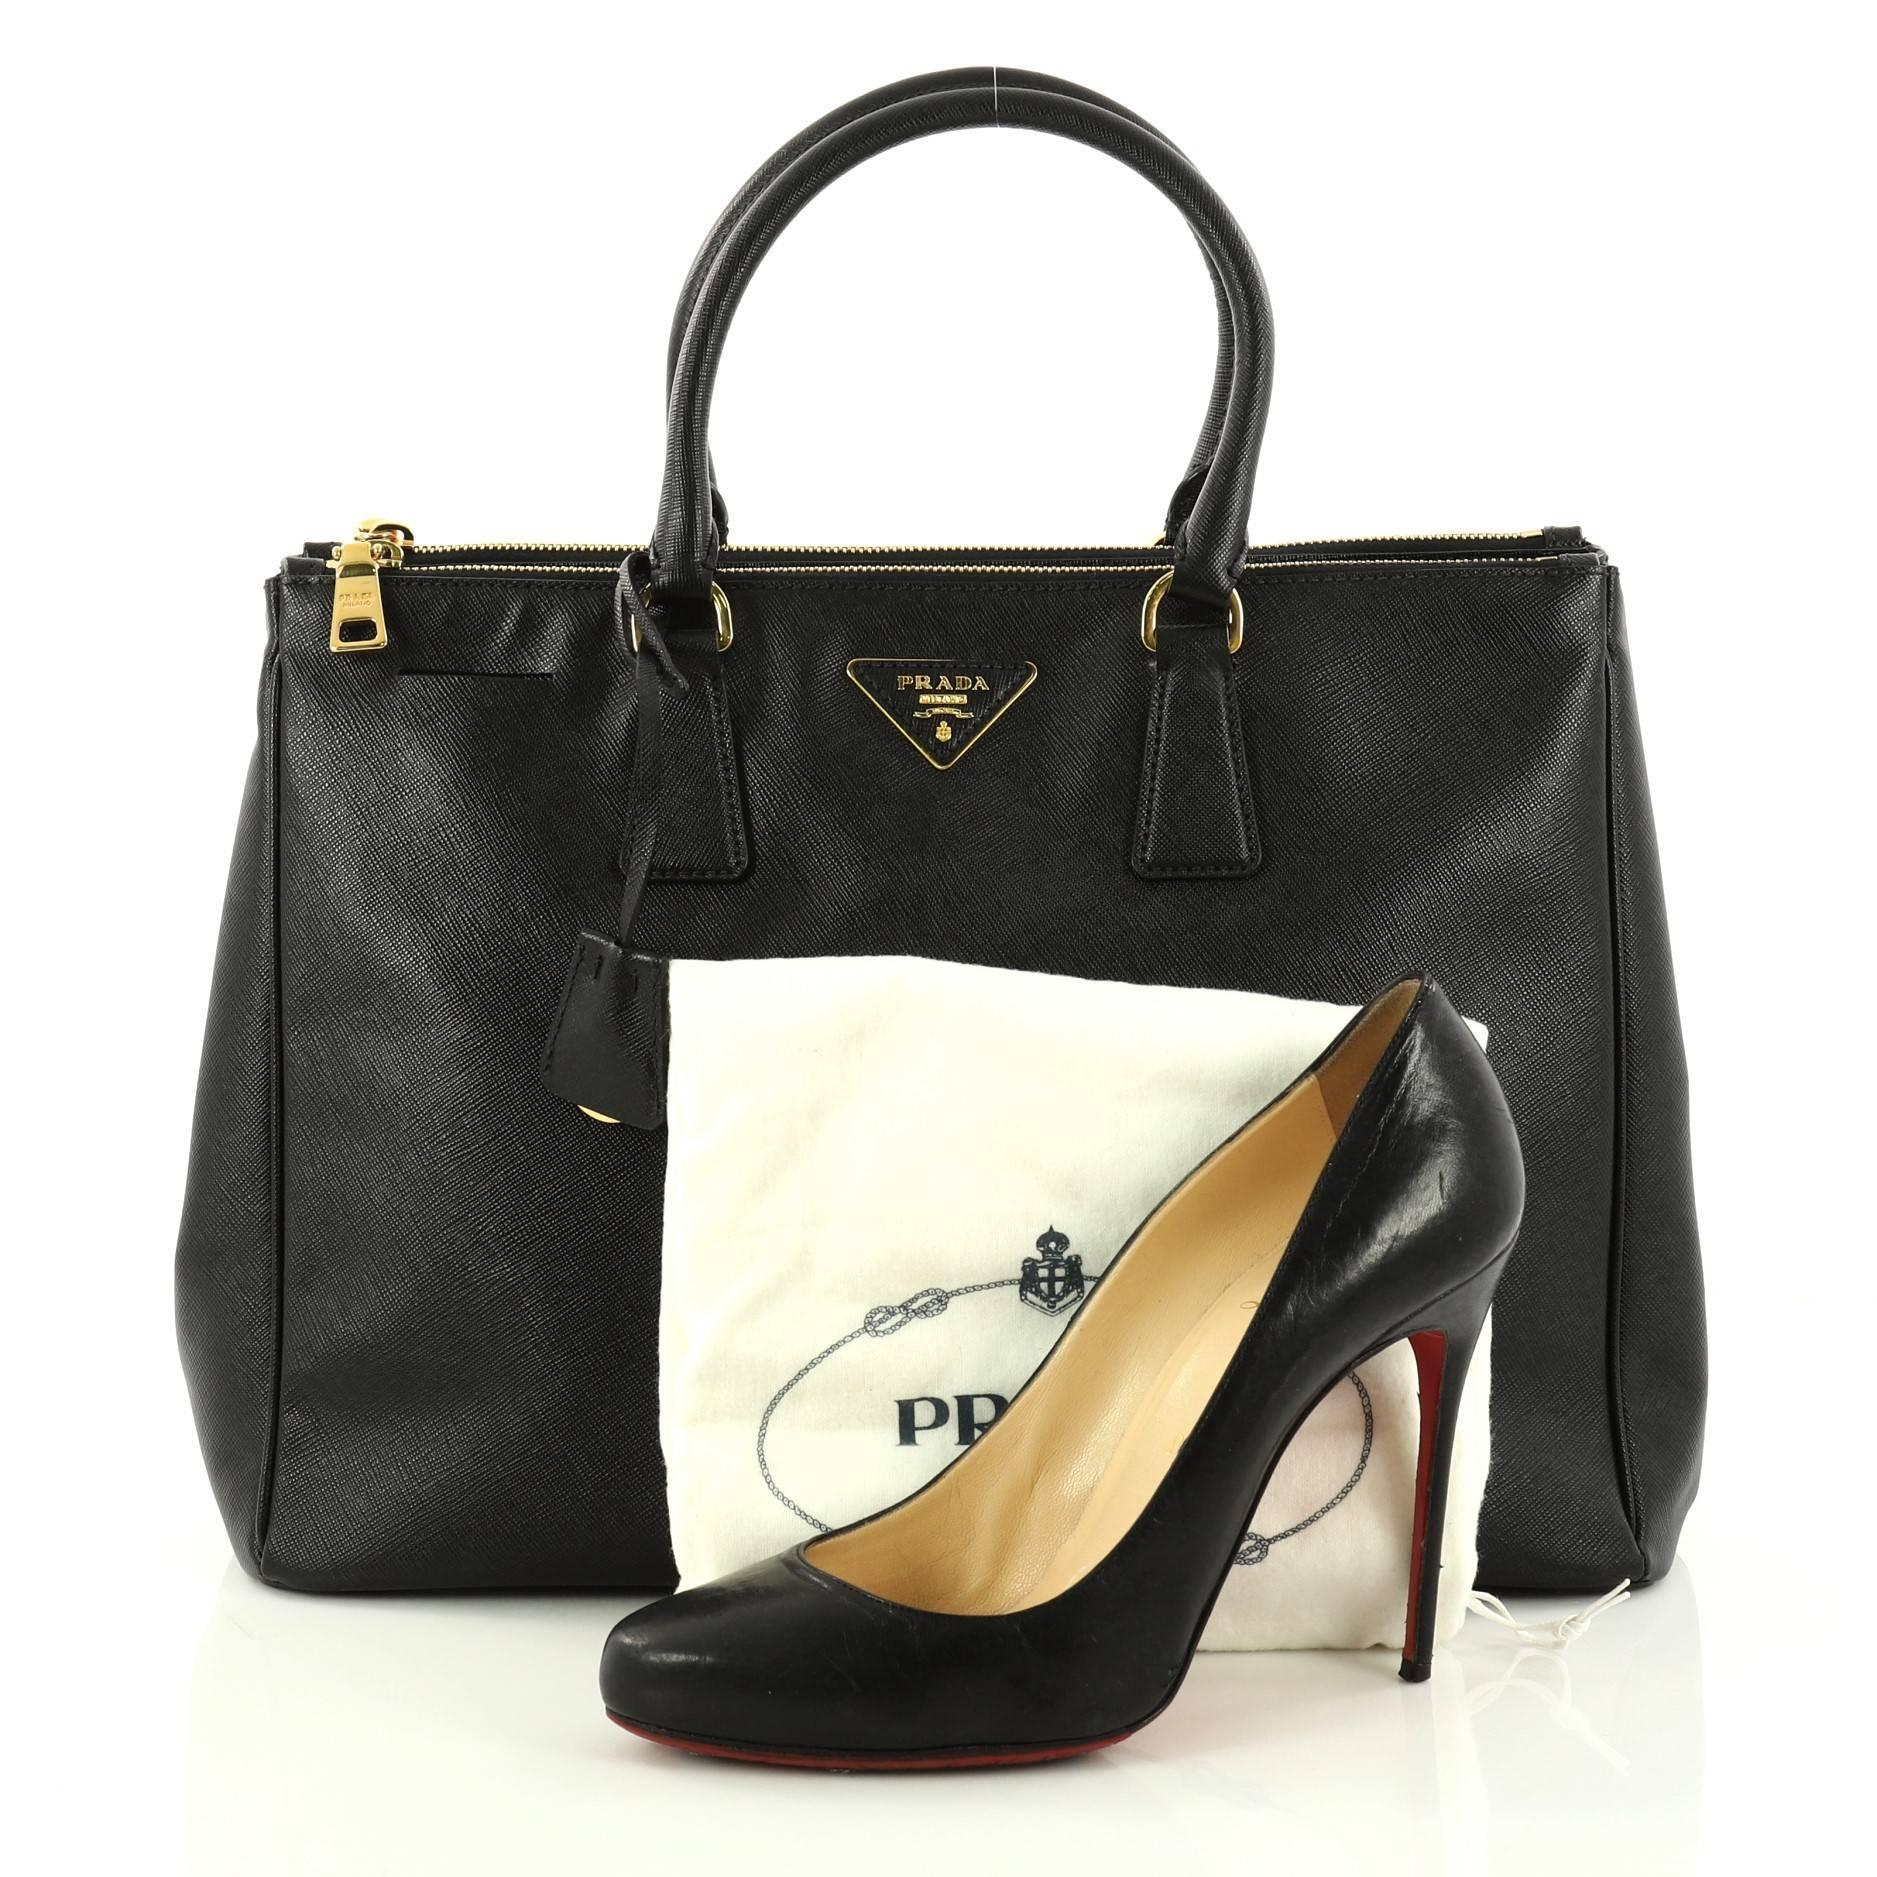 ... real this authentic prada double zip lux tote saffiano leather large is  perfect bag to complete e1292226bf05d